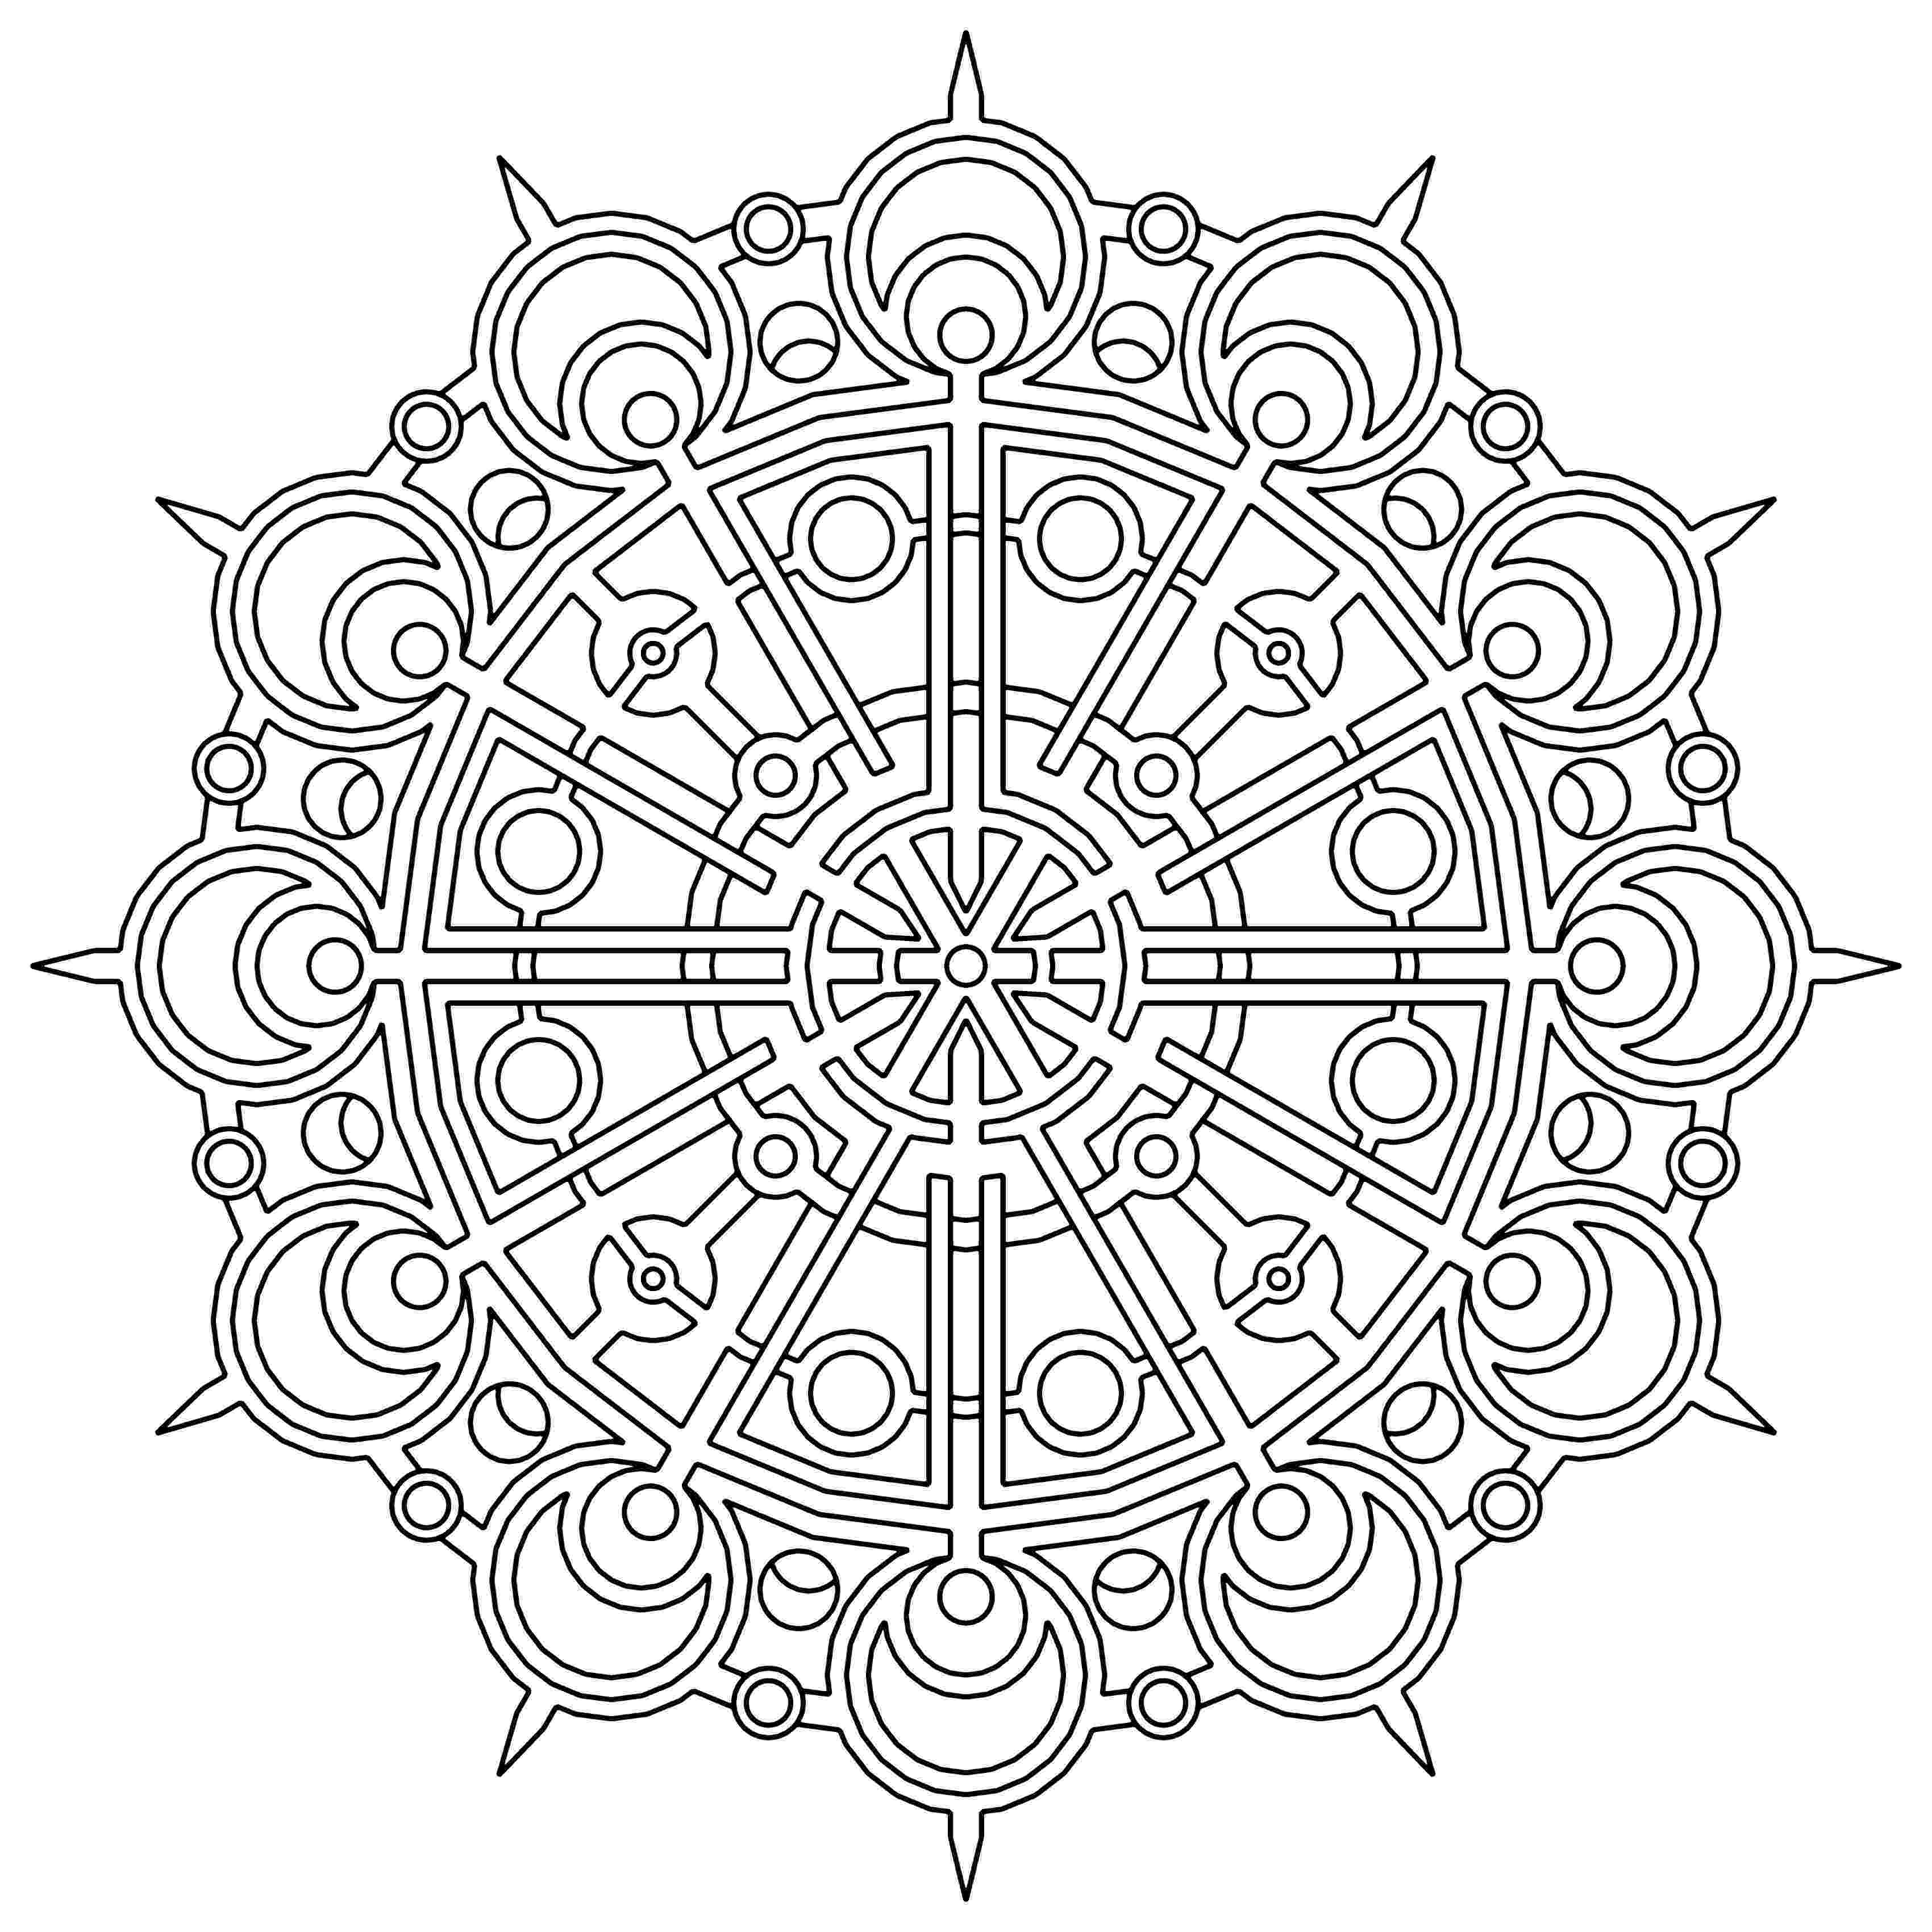 printable colouring patterns free printable geometric coloring pages for kids patterns colouring printable